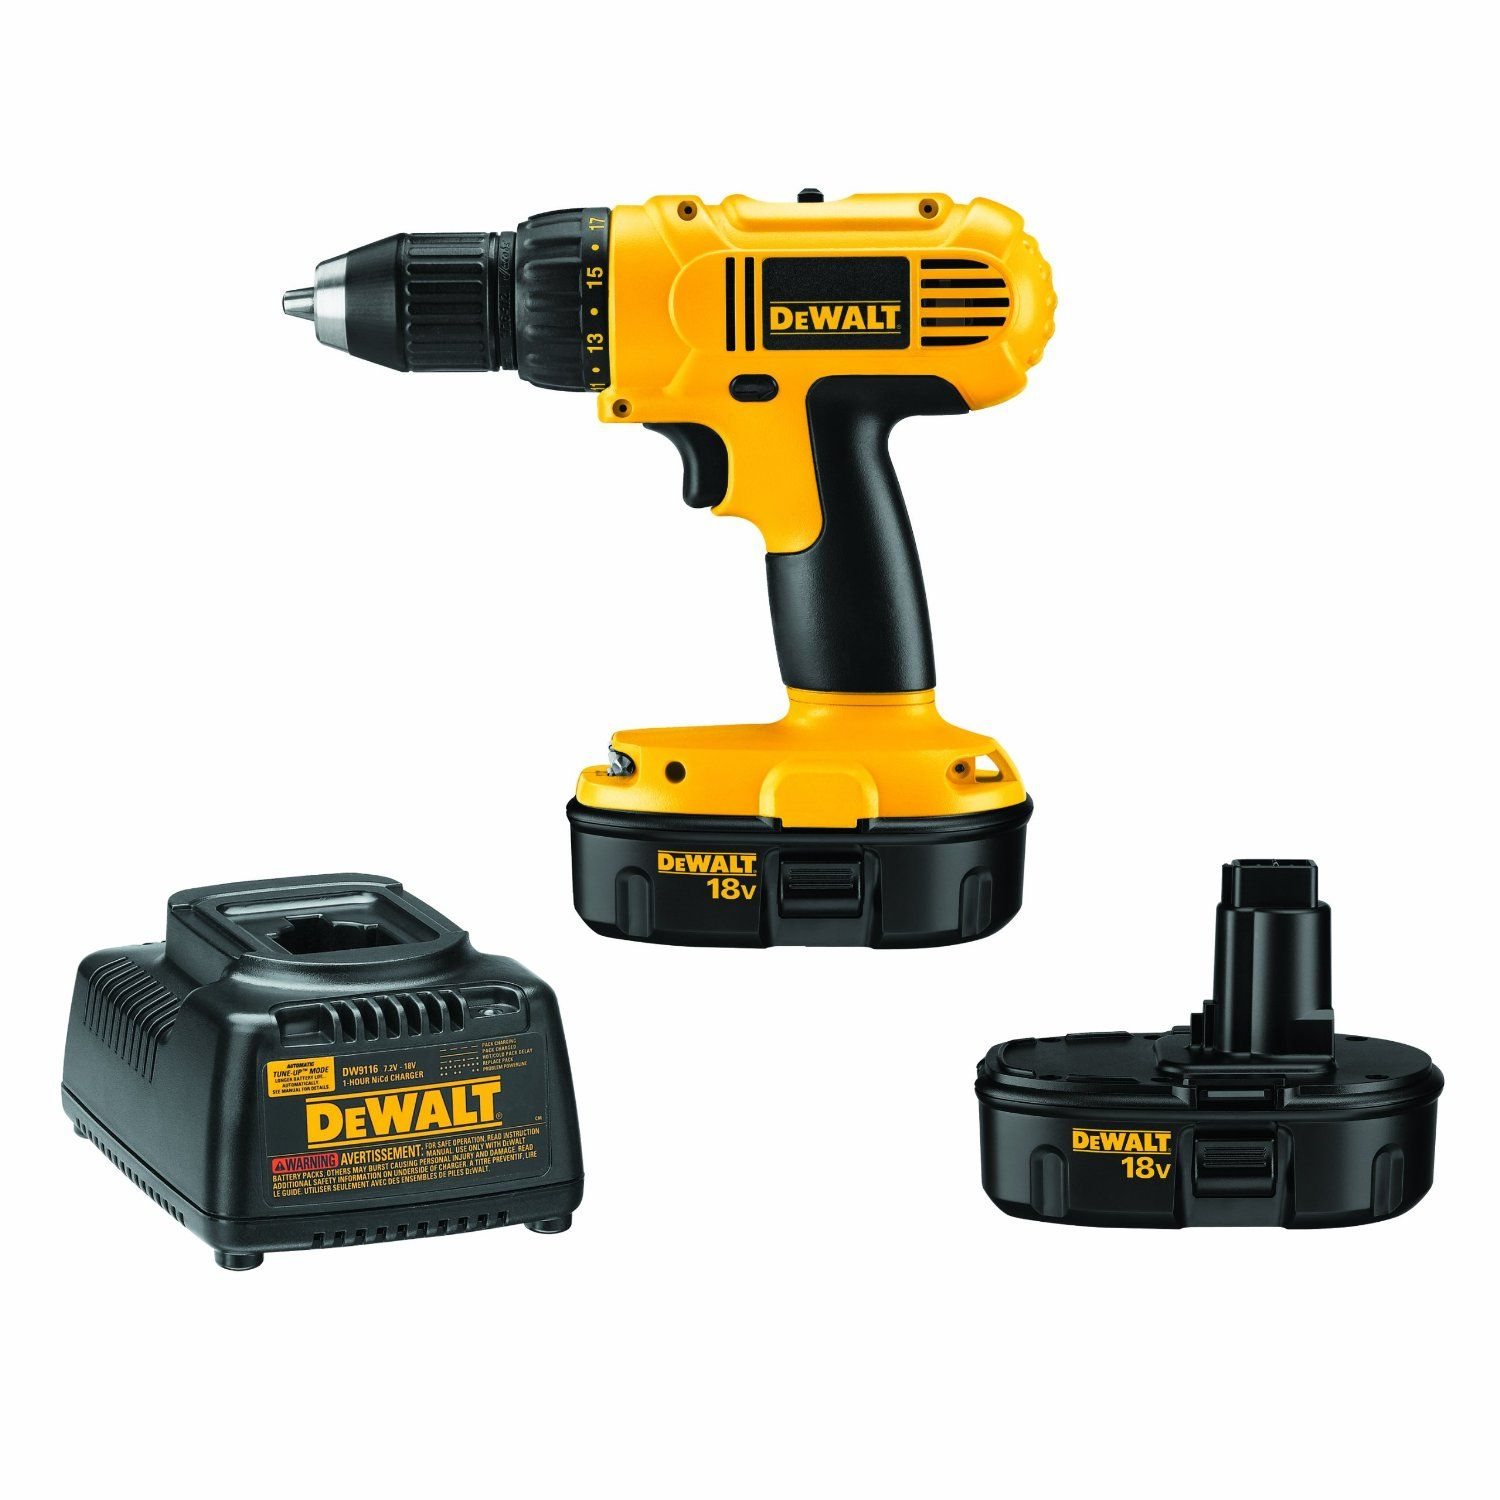 Amazon 50 Off Dewalt Tools 25 100 Queen Of Free Dewalt Drill Used Woodworking Tools Cordless Drill Reviews